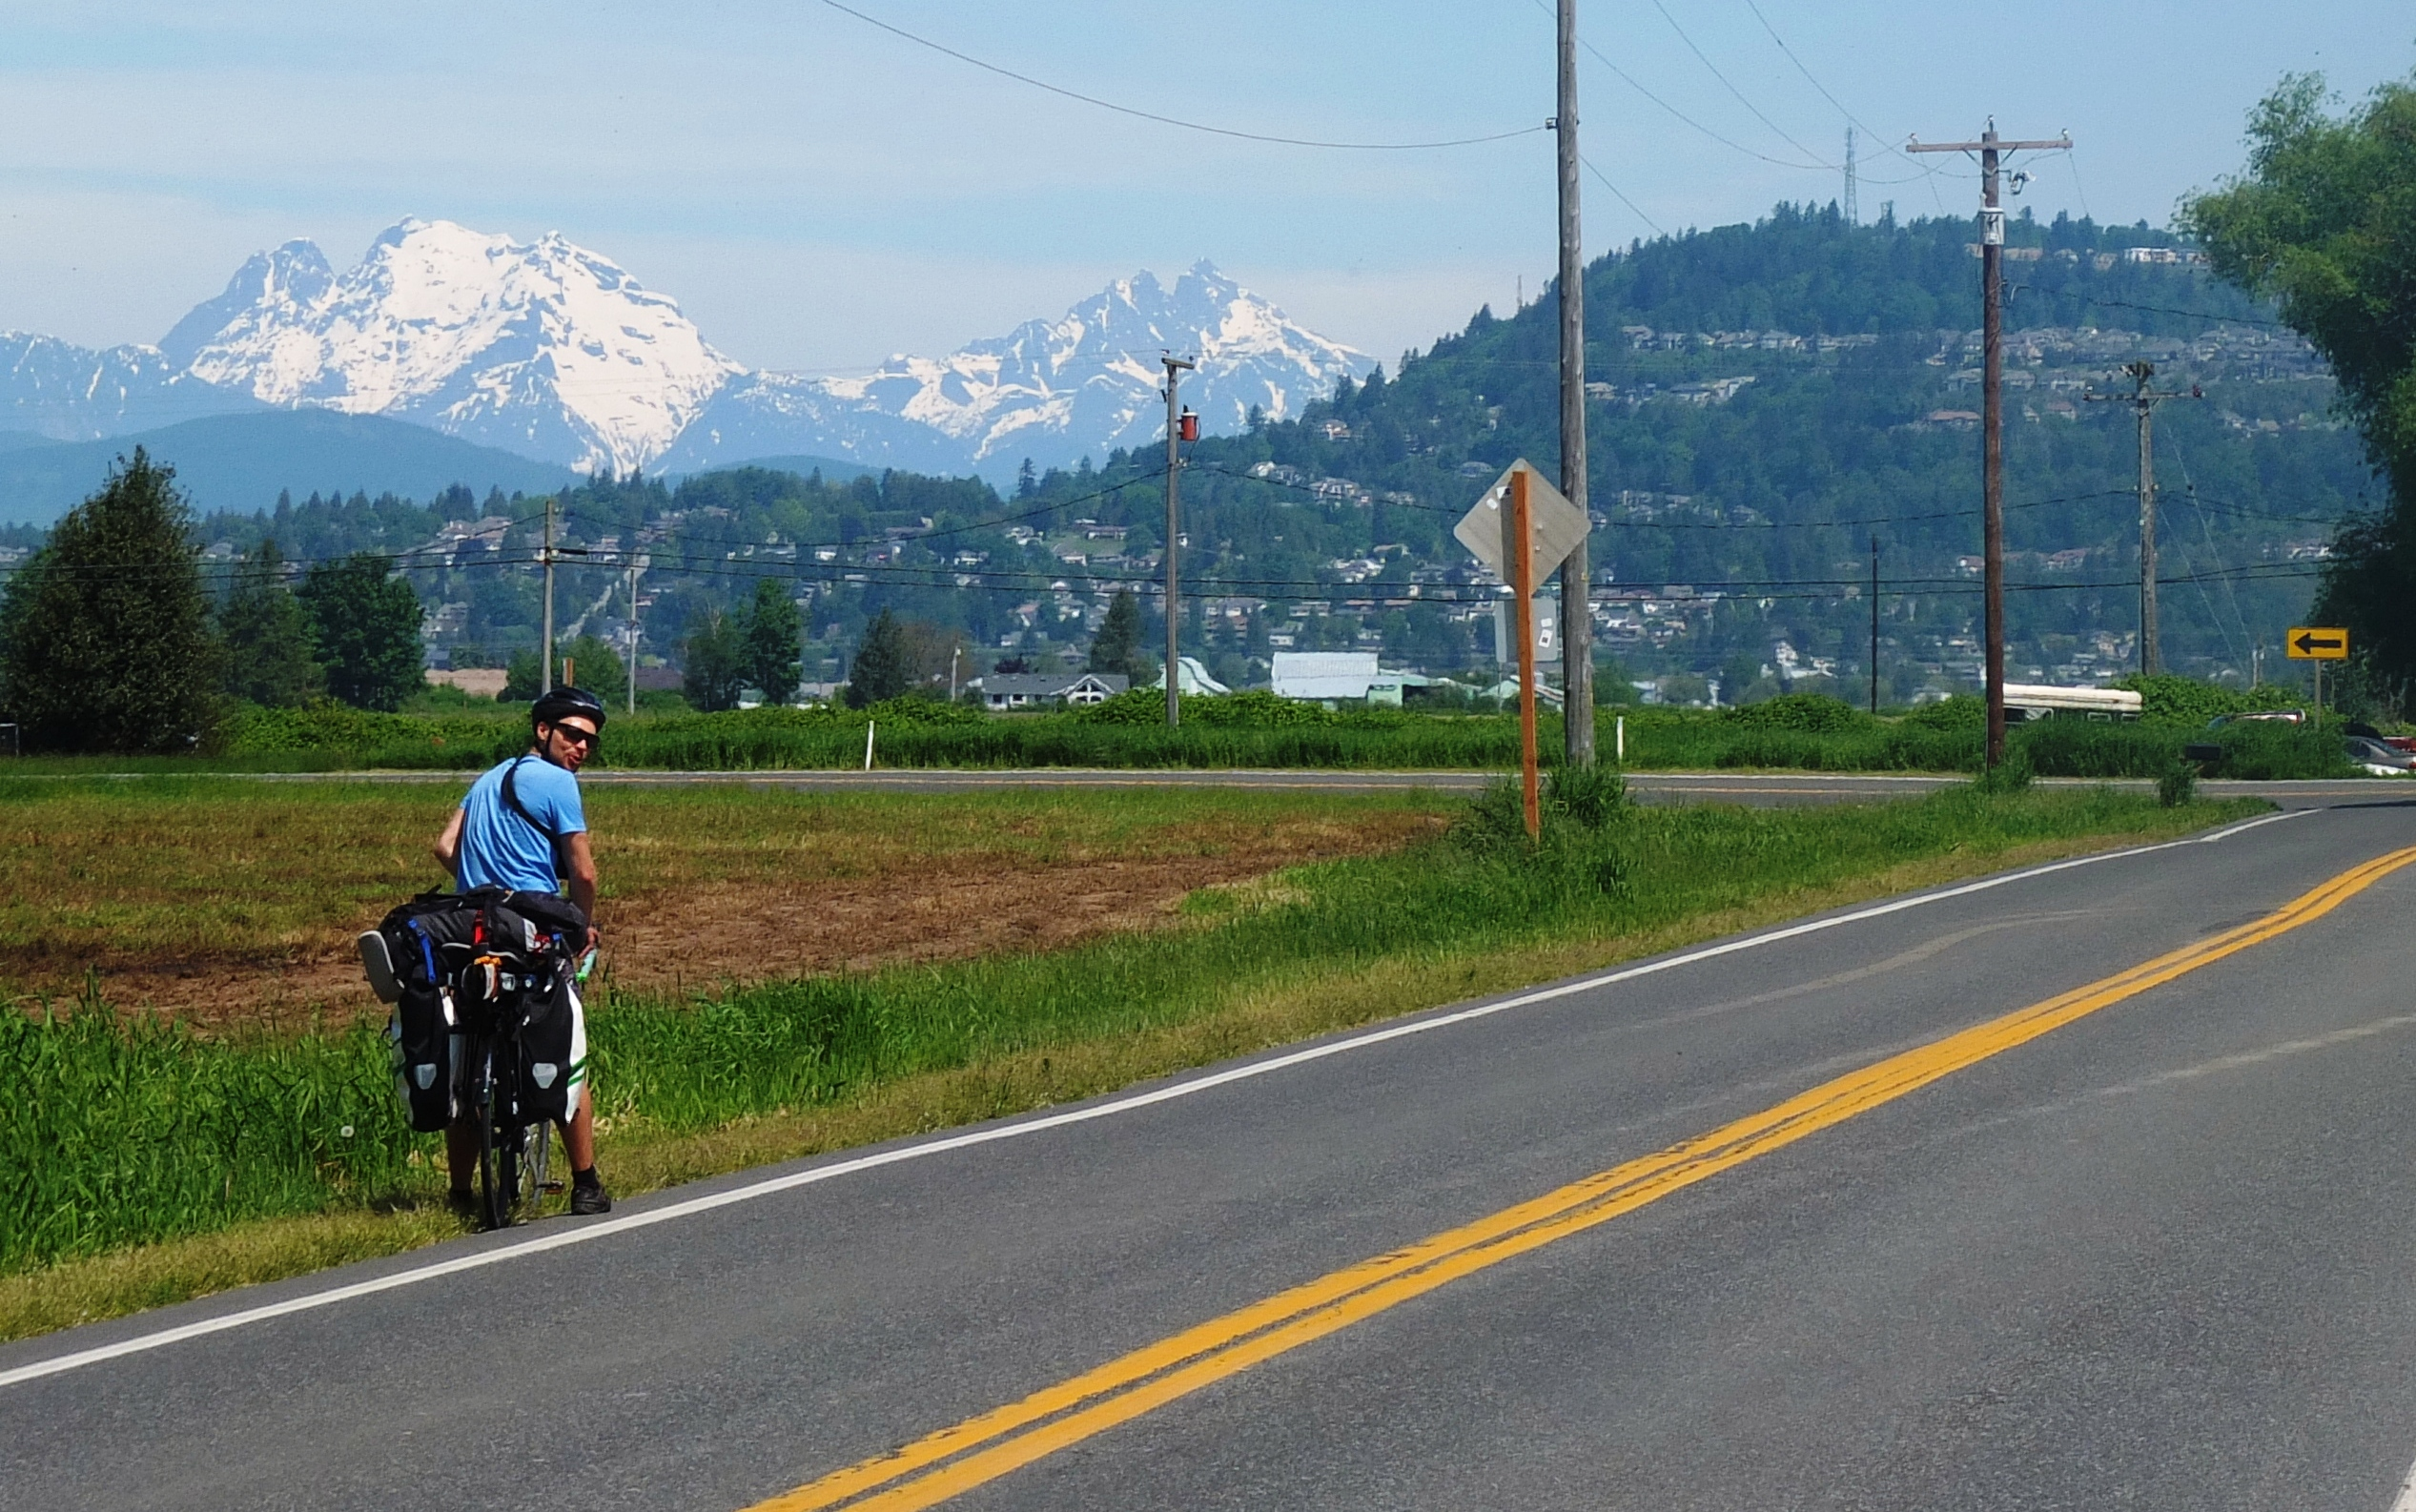 Welcome to bike-touring in Washington! Quiet roads, great scenery.